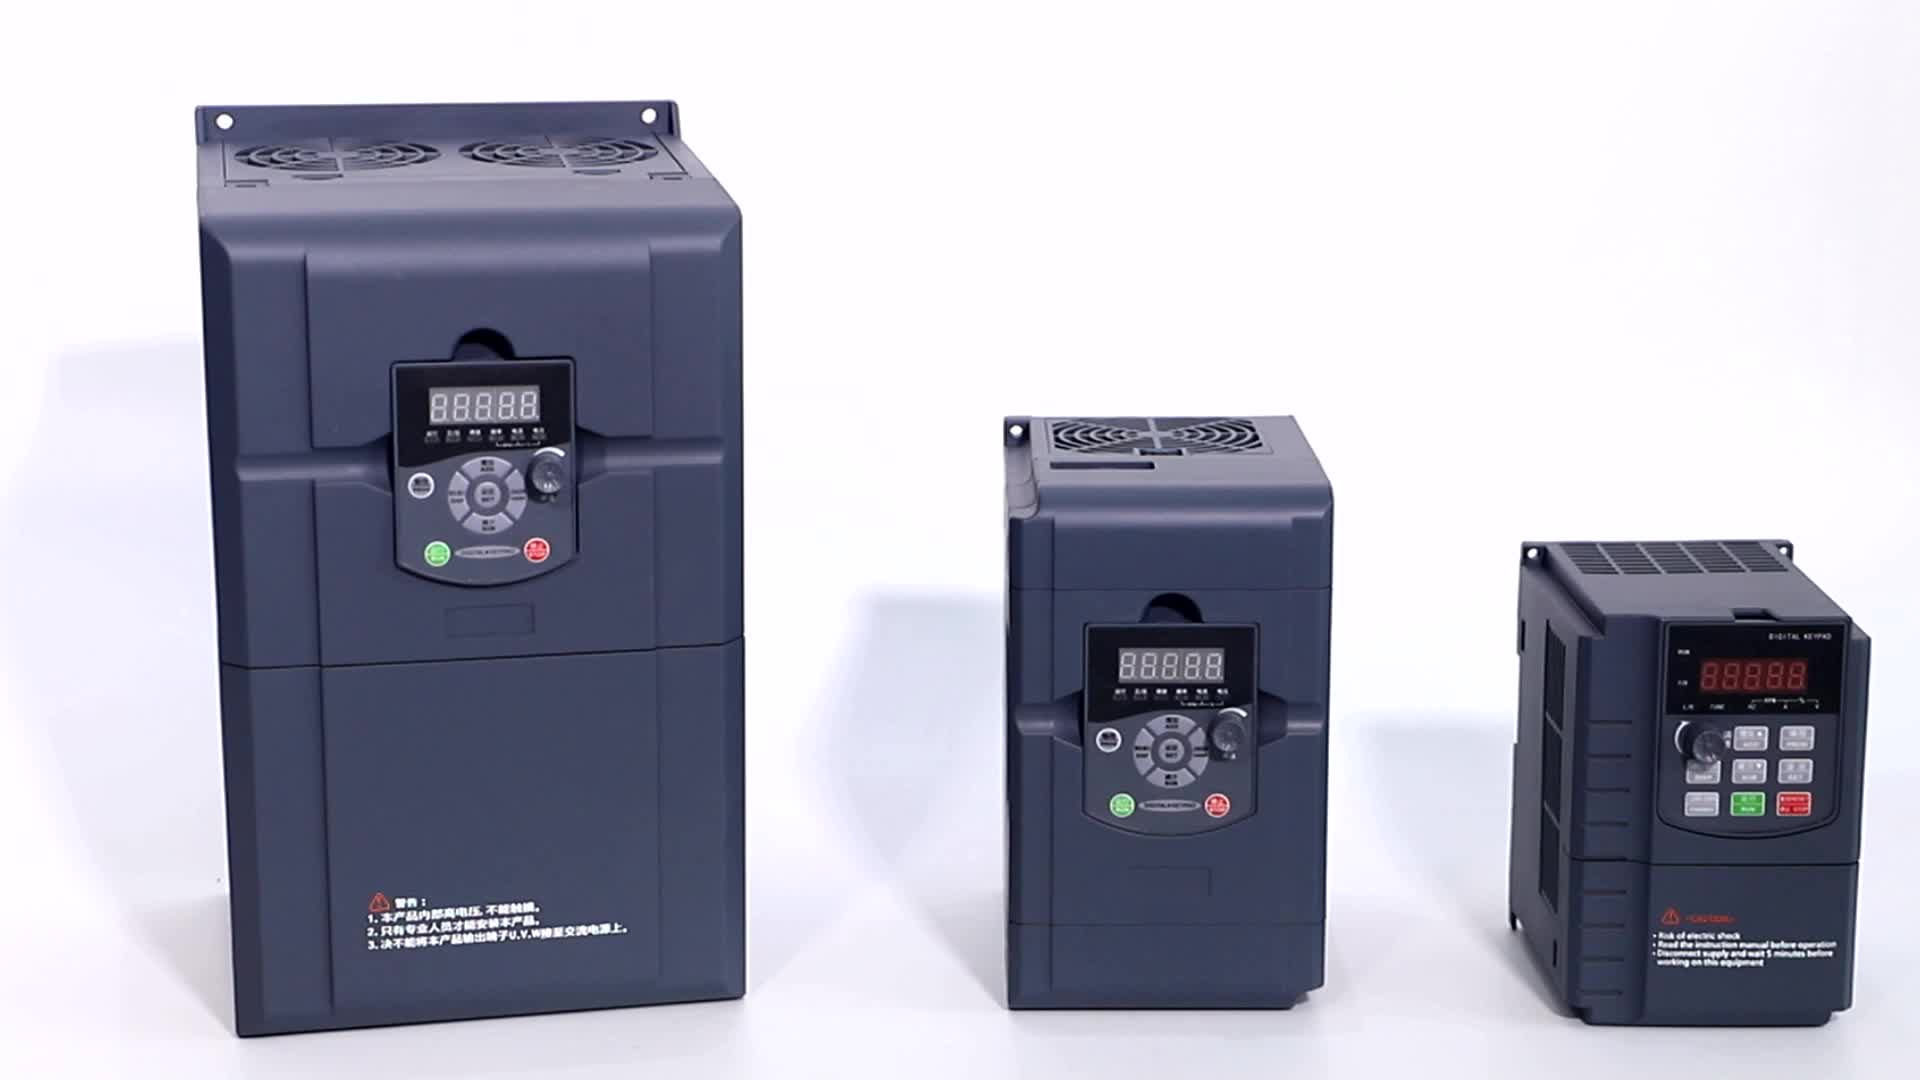 220V 1.5KW 50HZ 60HZ CHINA motor drive phase vfd inverter ZQ511M-1R5G1 variable frequency drive